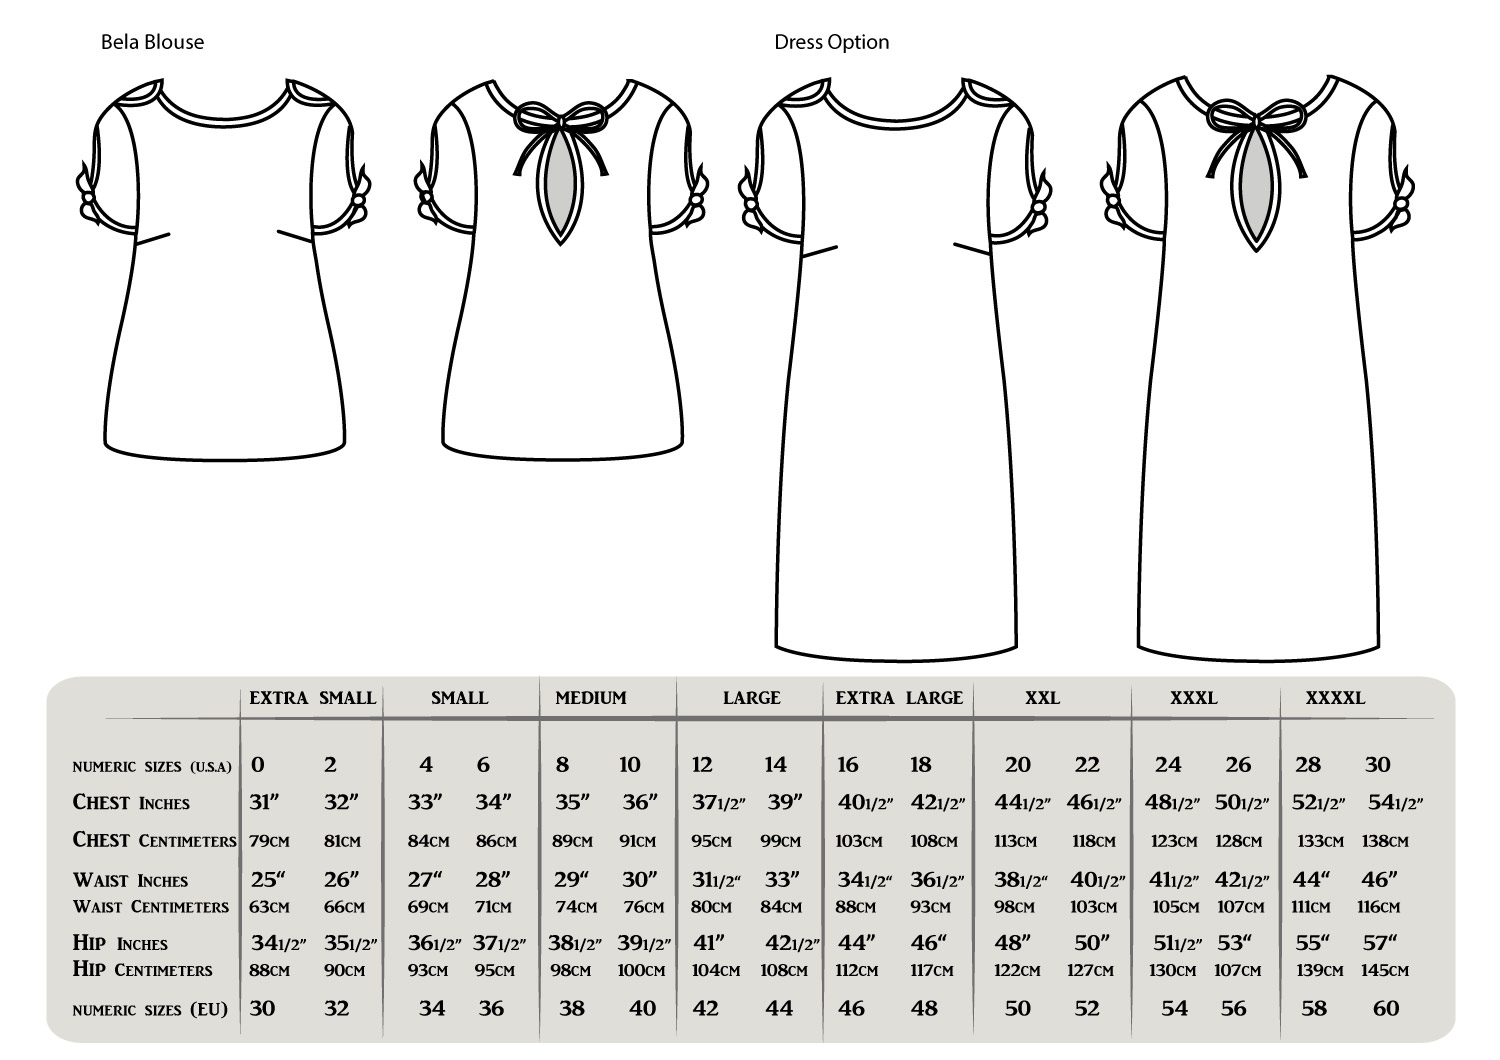 This easy to follow sewing pattern has two length options to choose from to create a blouse or dress.